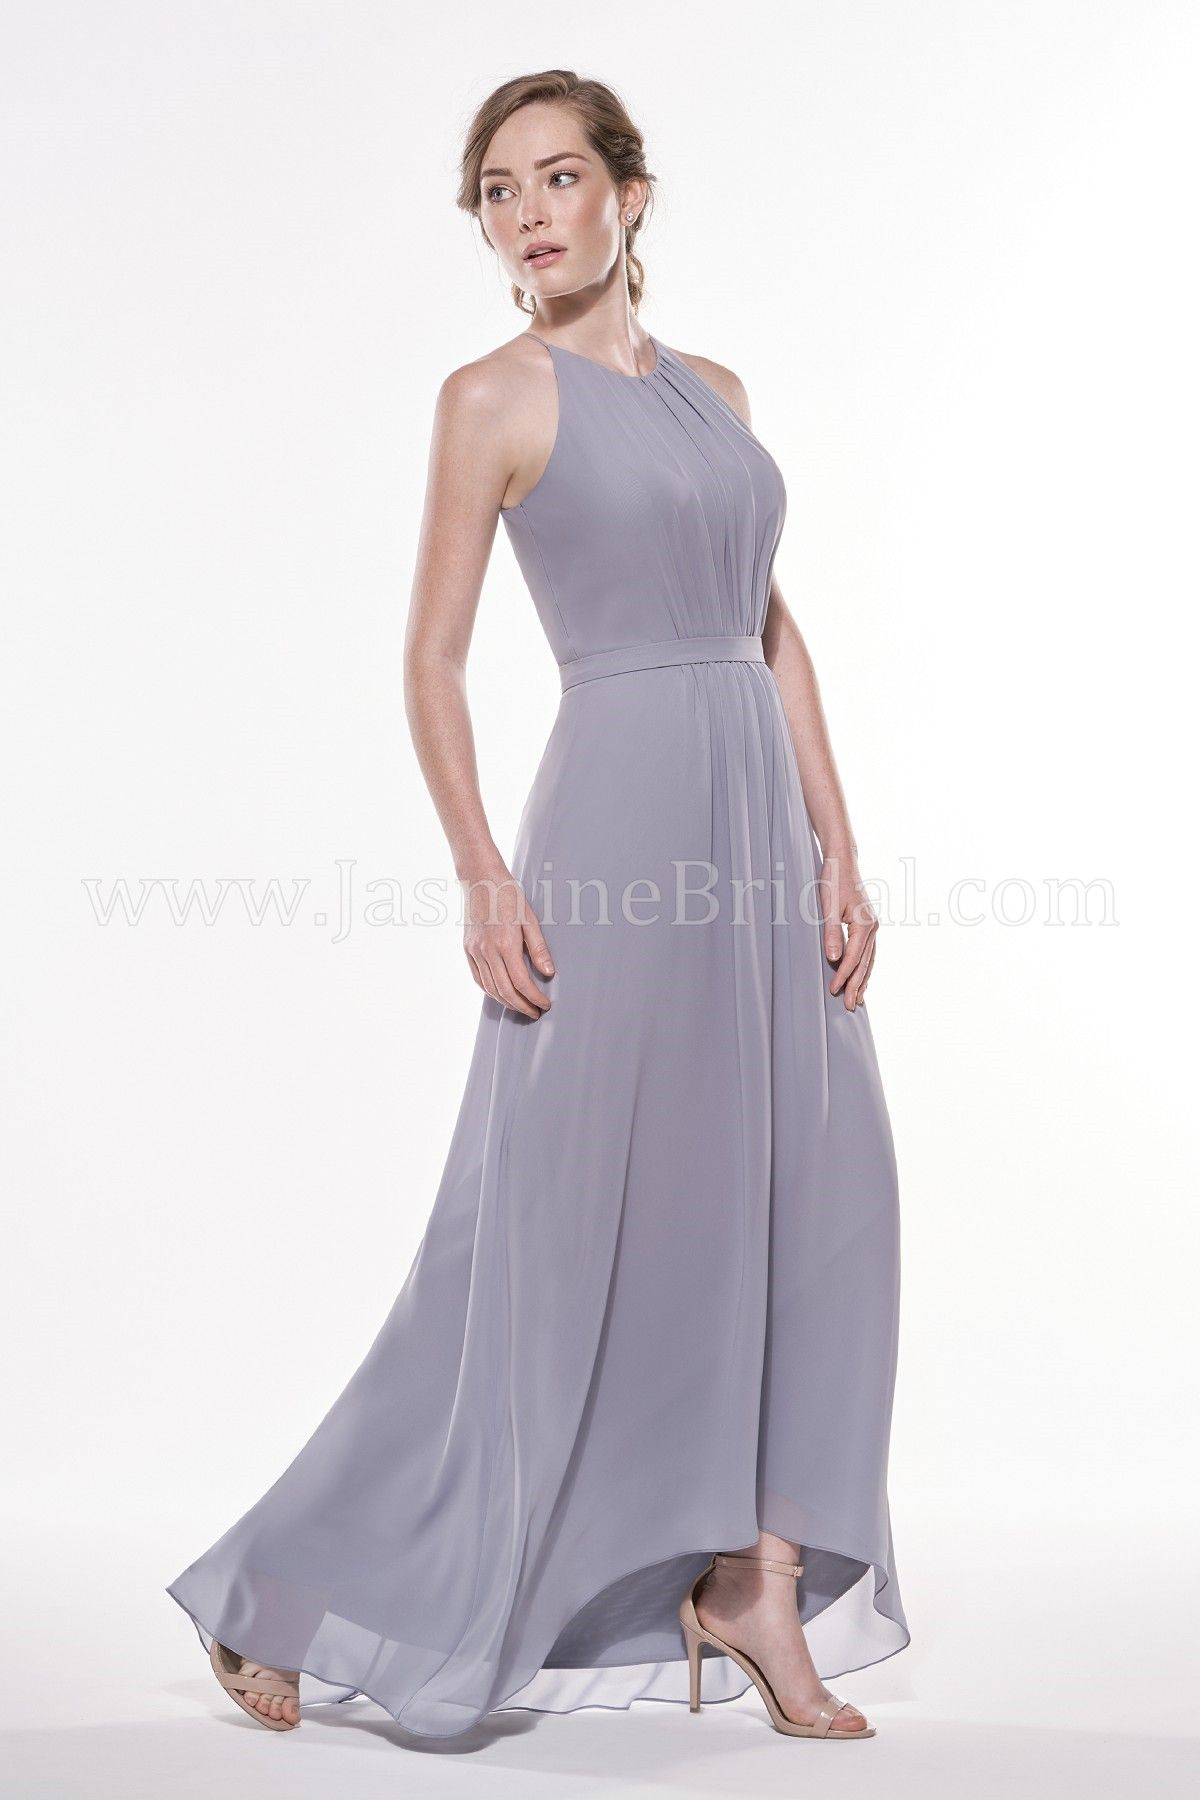 Jasmine bridal jasmine bridesmaids style p196003 in nickel dont miss out on your chance to get your very own jasmine bridesmaid gown our wedding attire can also double for special events ombrellifo Images